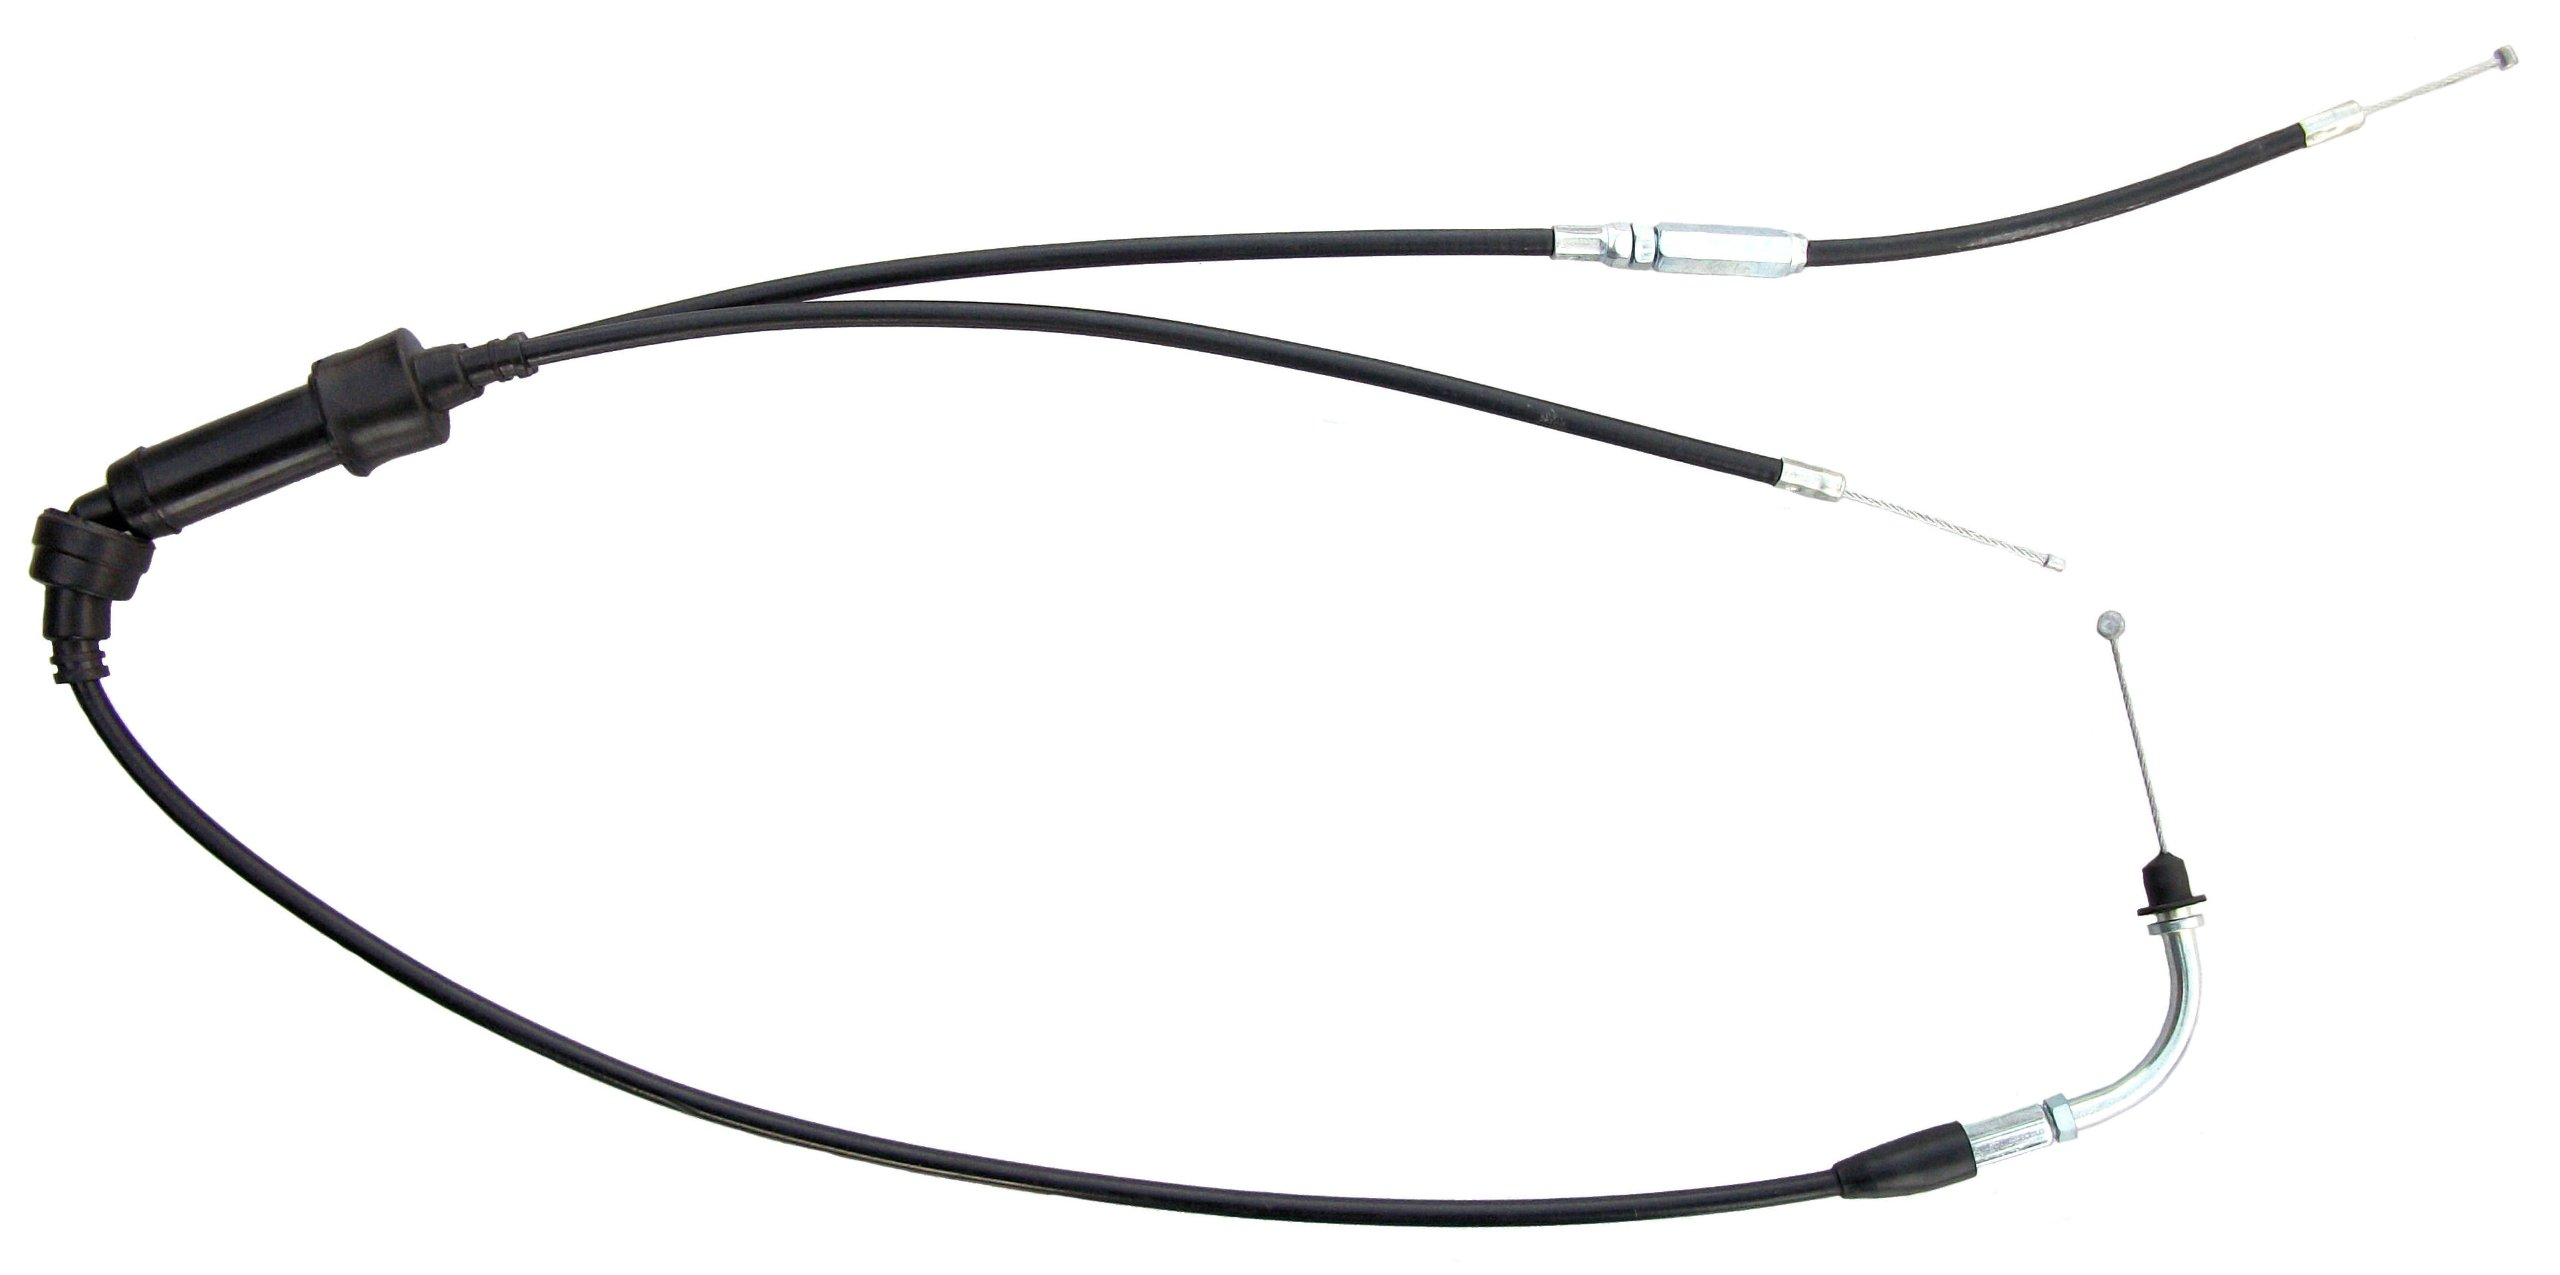 Buy Yamaha PW 50 PW50 Gas Throttle Accelerator Cable Dirt